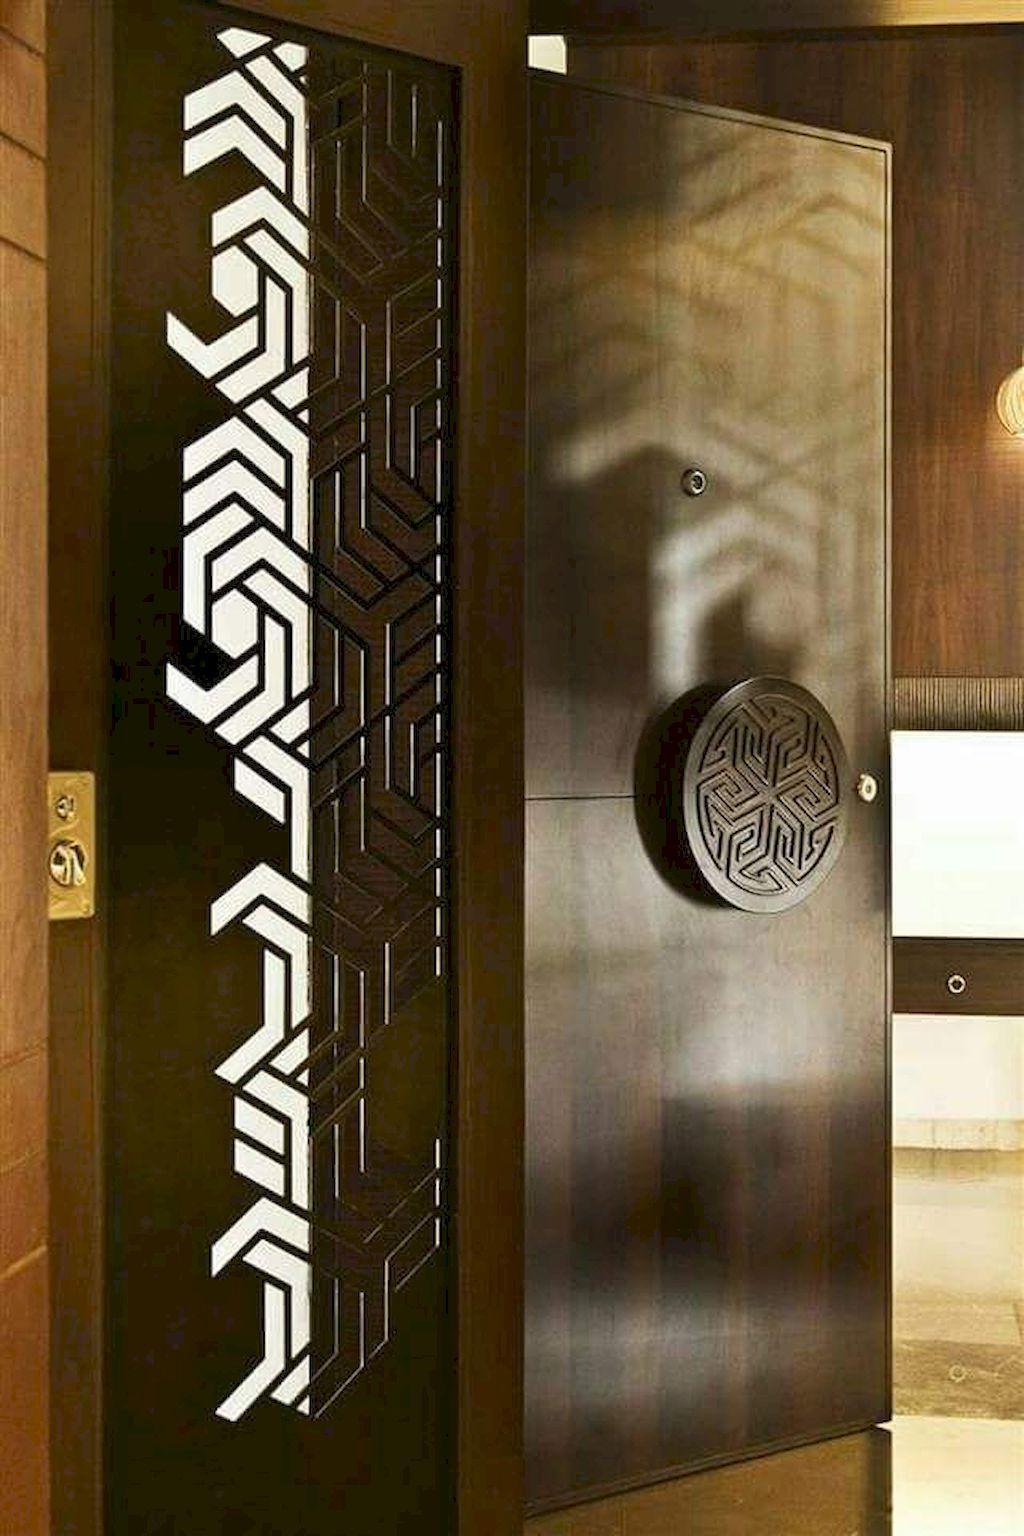 Fascinating 10 Ideas For A Special Entrance To Your Home Https Homemidi Com 2019 04 04 10 Ideas For Main Door Design Entrance Door Design Home Door Design